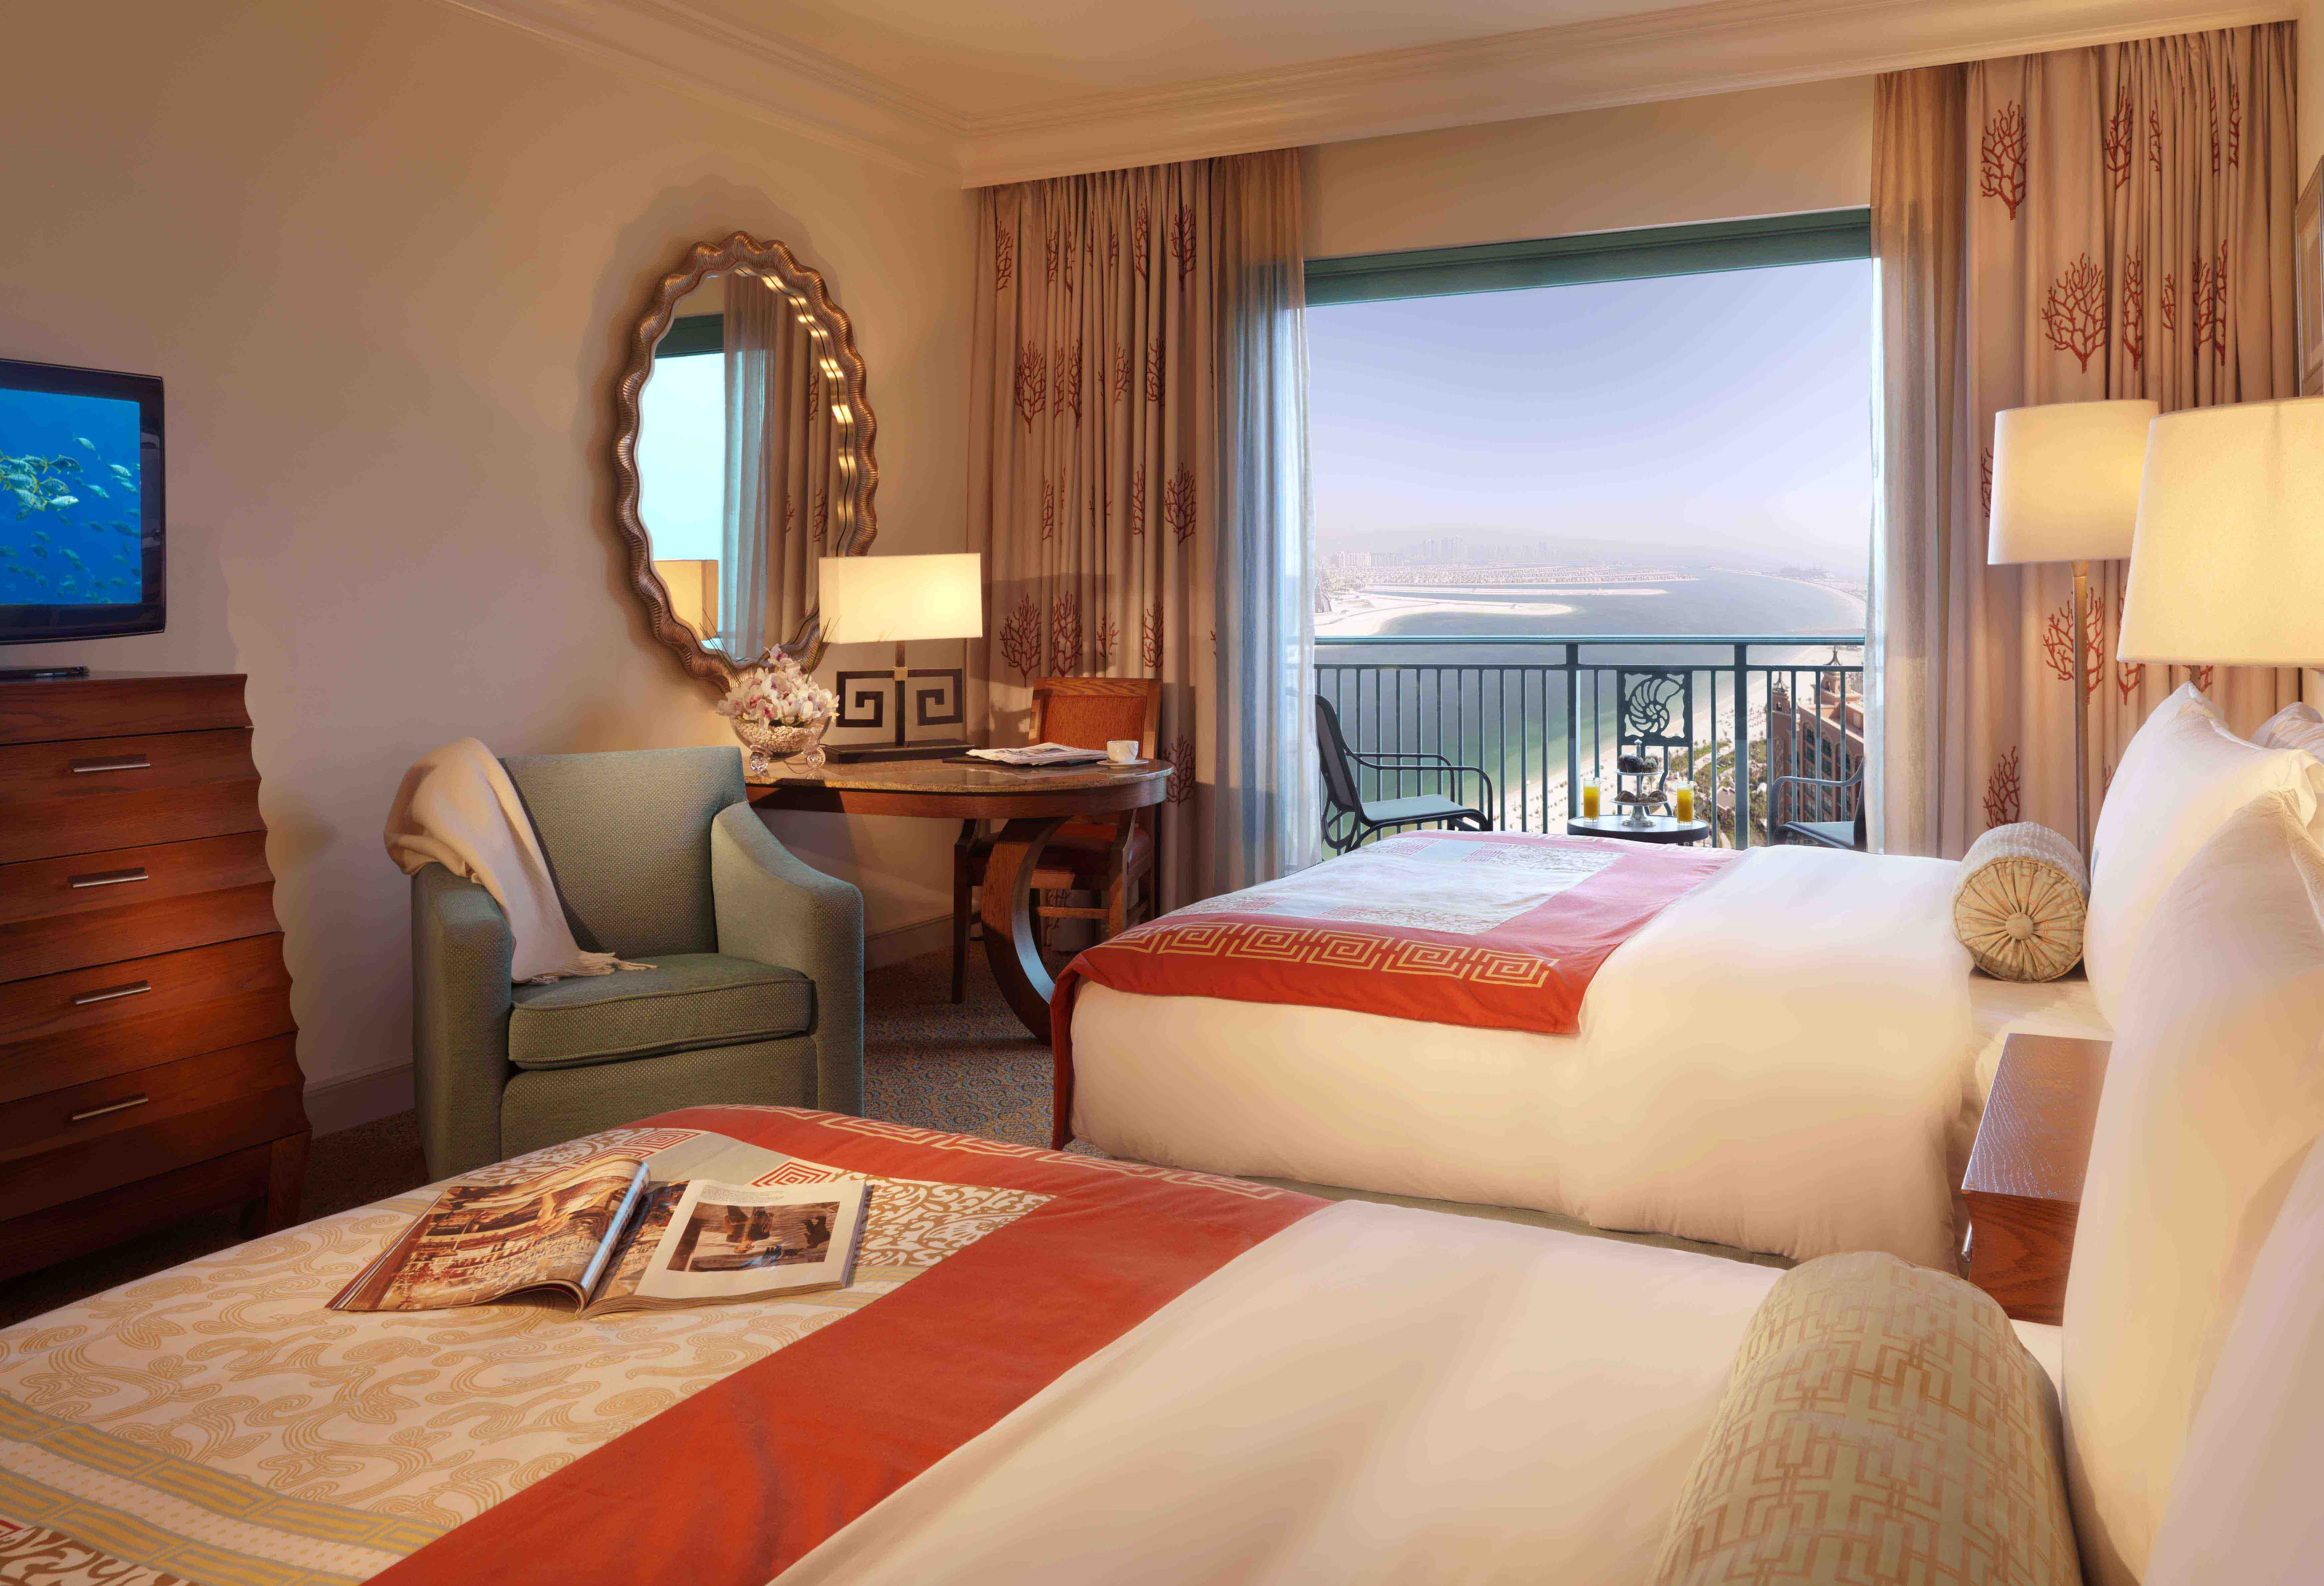 Atlantis Rooms Five Luxury Hotels On The Palm Jumeirah